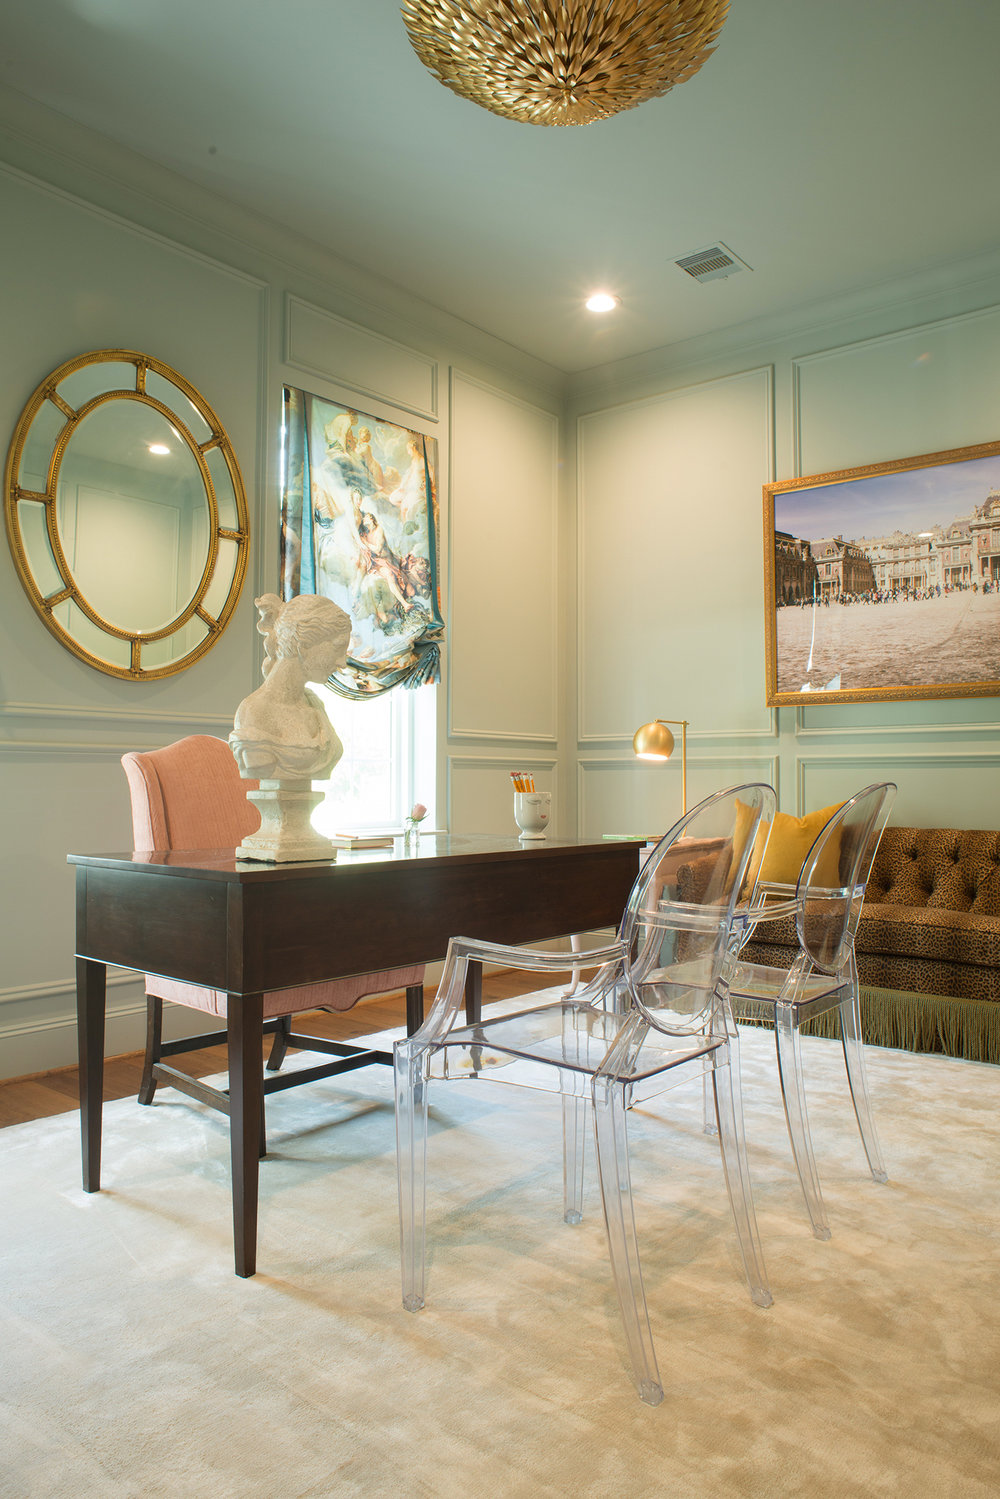 Art That's Uniquely Yours - Pictured Left:The homeowner loved Marie Antoinette and had her study designed around that theme. I was able to take this image of Versailles for her (pictured above the leopard settee).